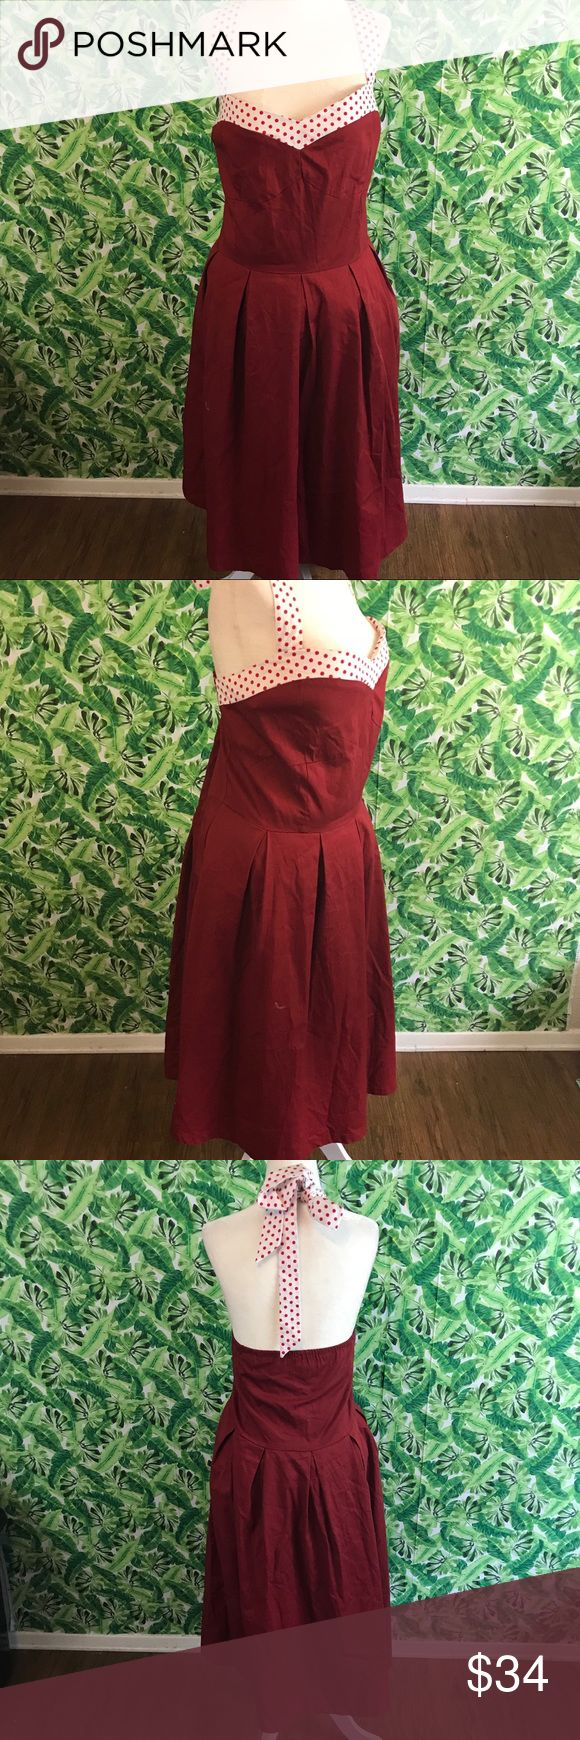 Women's plus size pinup Lindy bop red dress 22 Item- women's retro pinup Lindy bop dress plus size  Size- 6x/ 22  Measurements- 25 across bust 23 waist 40 length   Fabric content- cotton elastane   Condition- previously owned no holes tears or stains   All items come from a smoke free dog friendly home. I ship 3-4 times a week. No trades please! I am open to reasonable offers! lindy bop Dresses